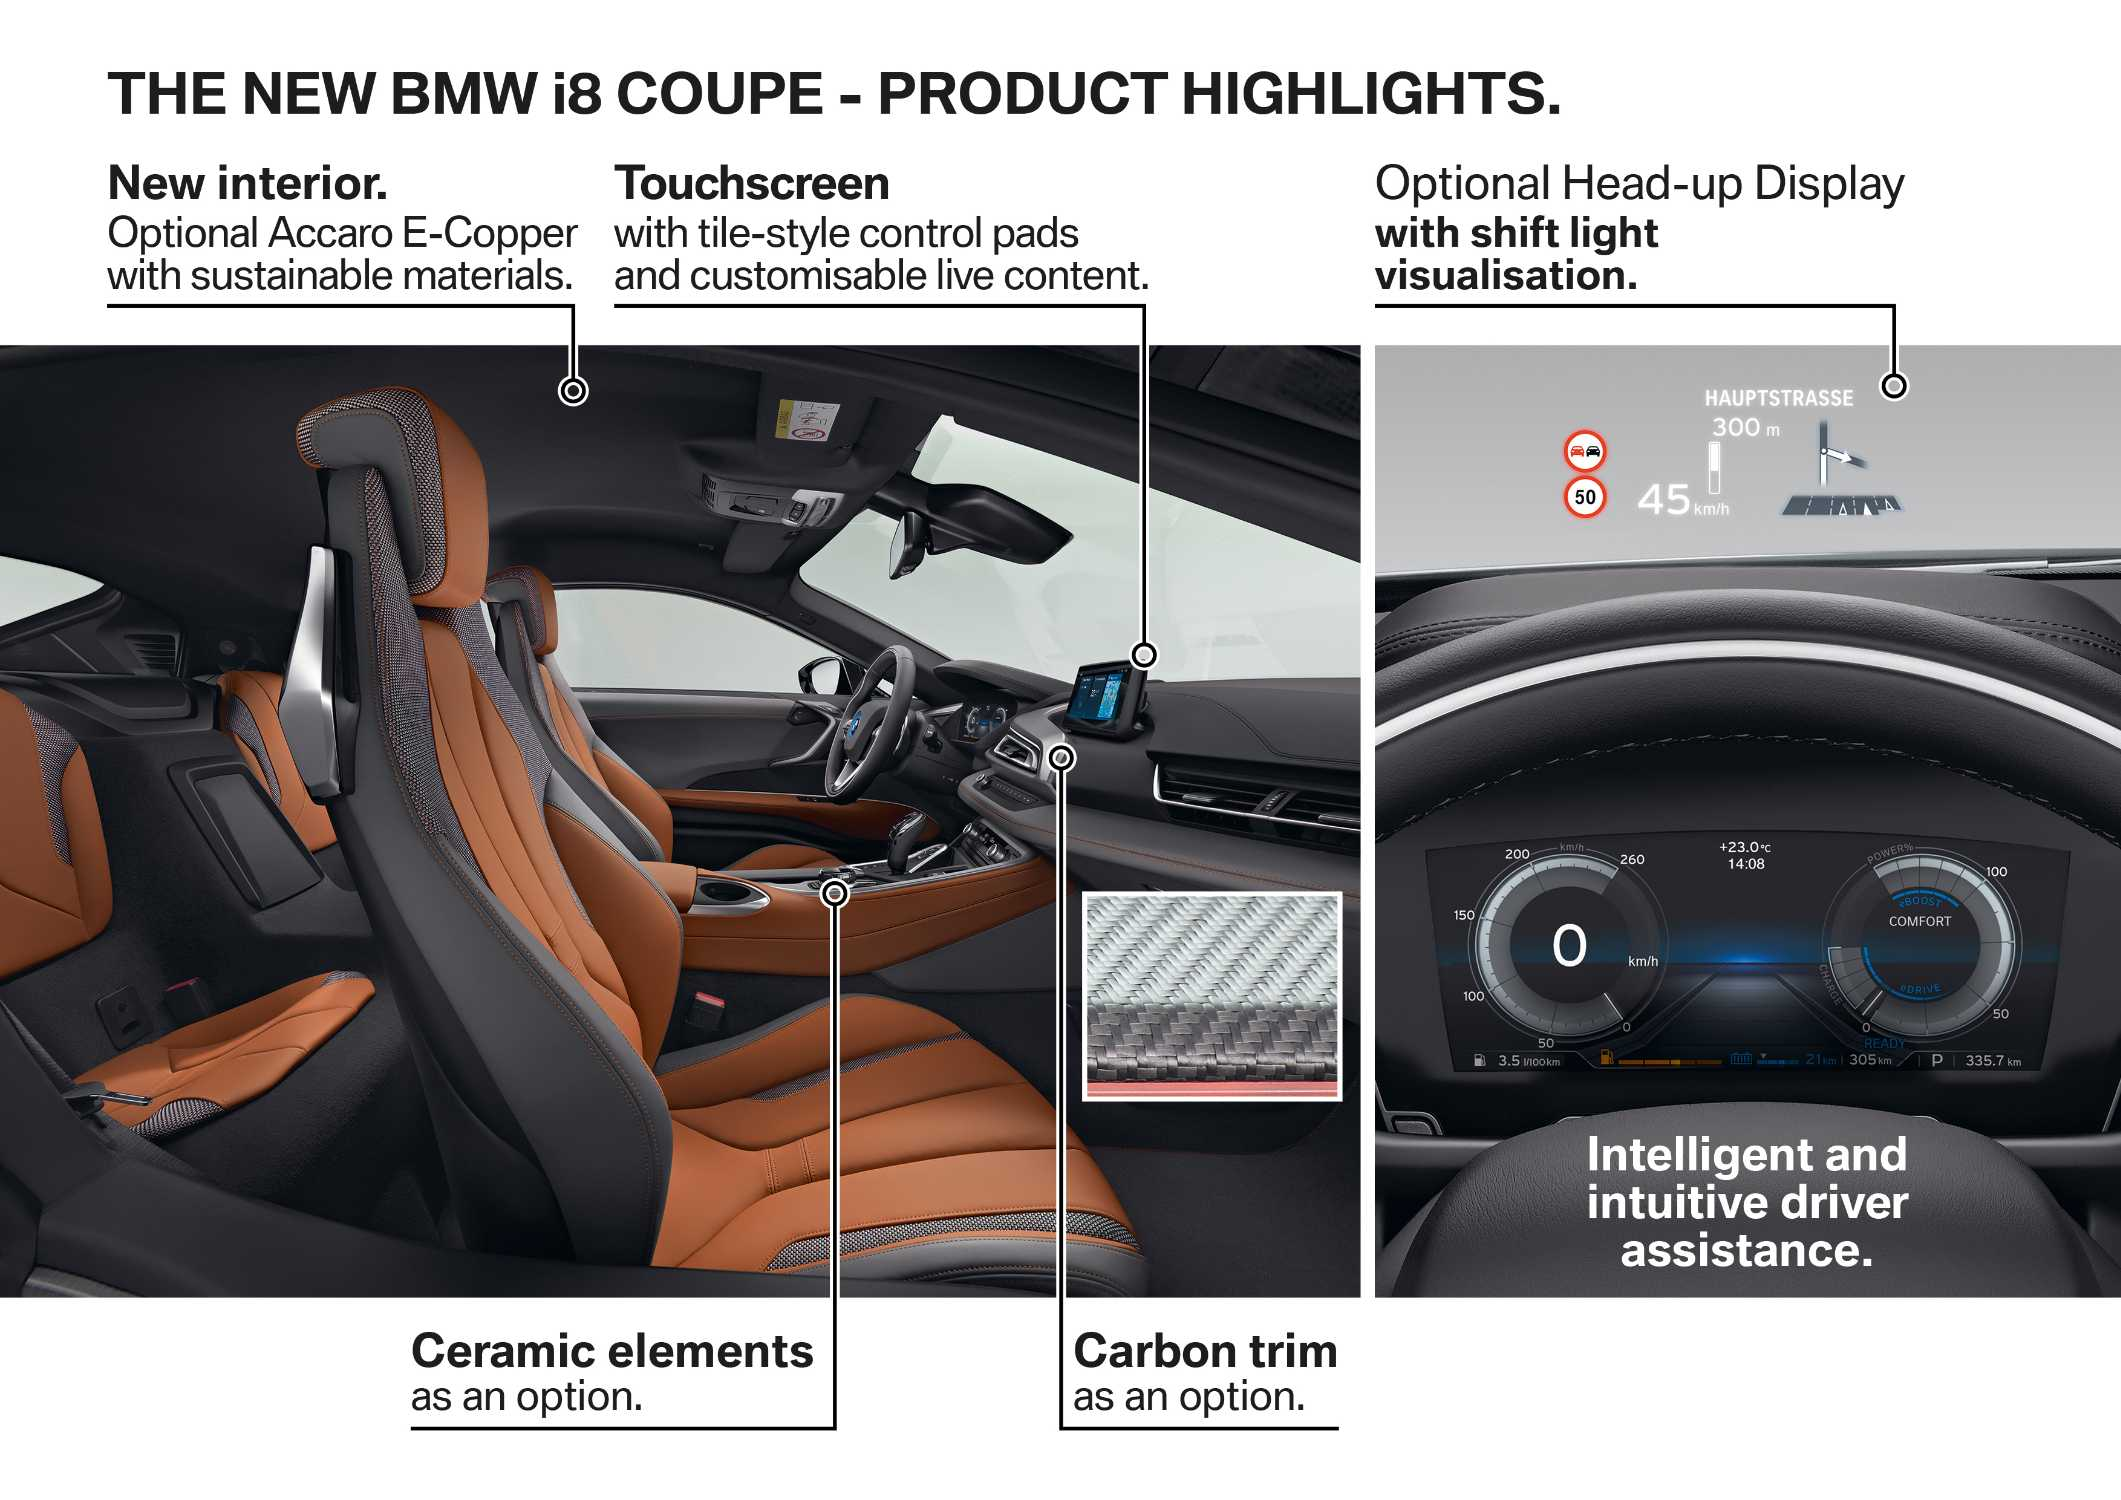 The new BMW i8 Coupe - Product Highlights. (11/2017)